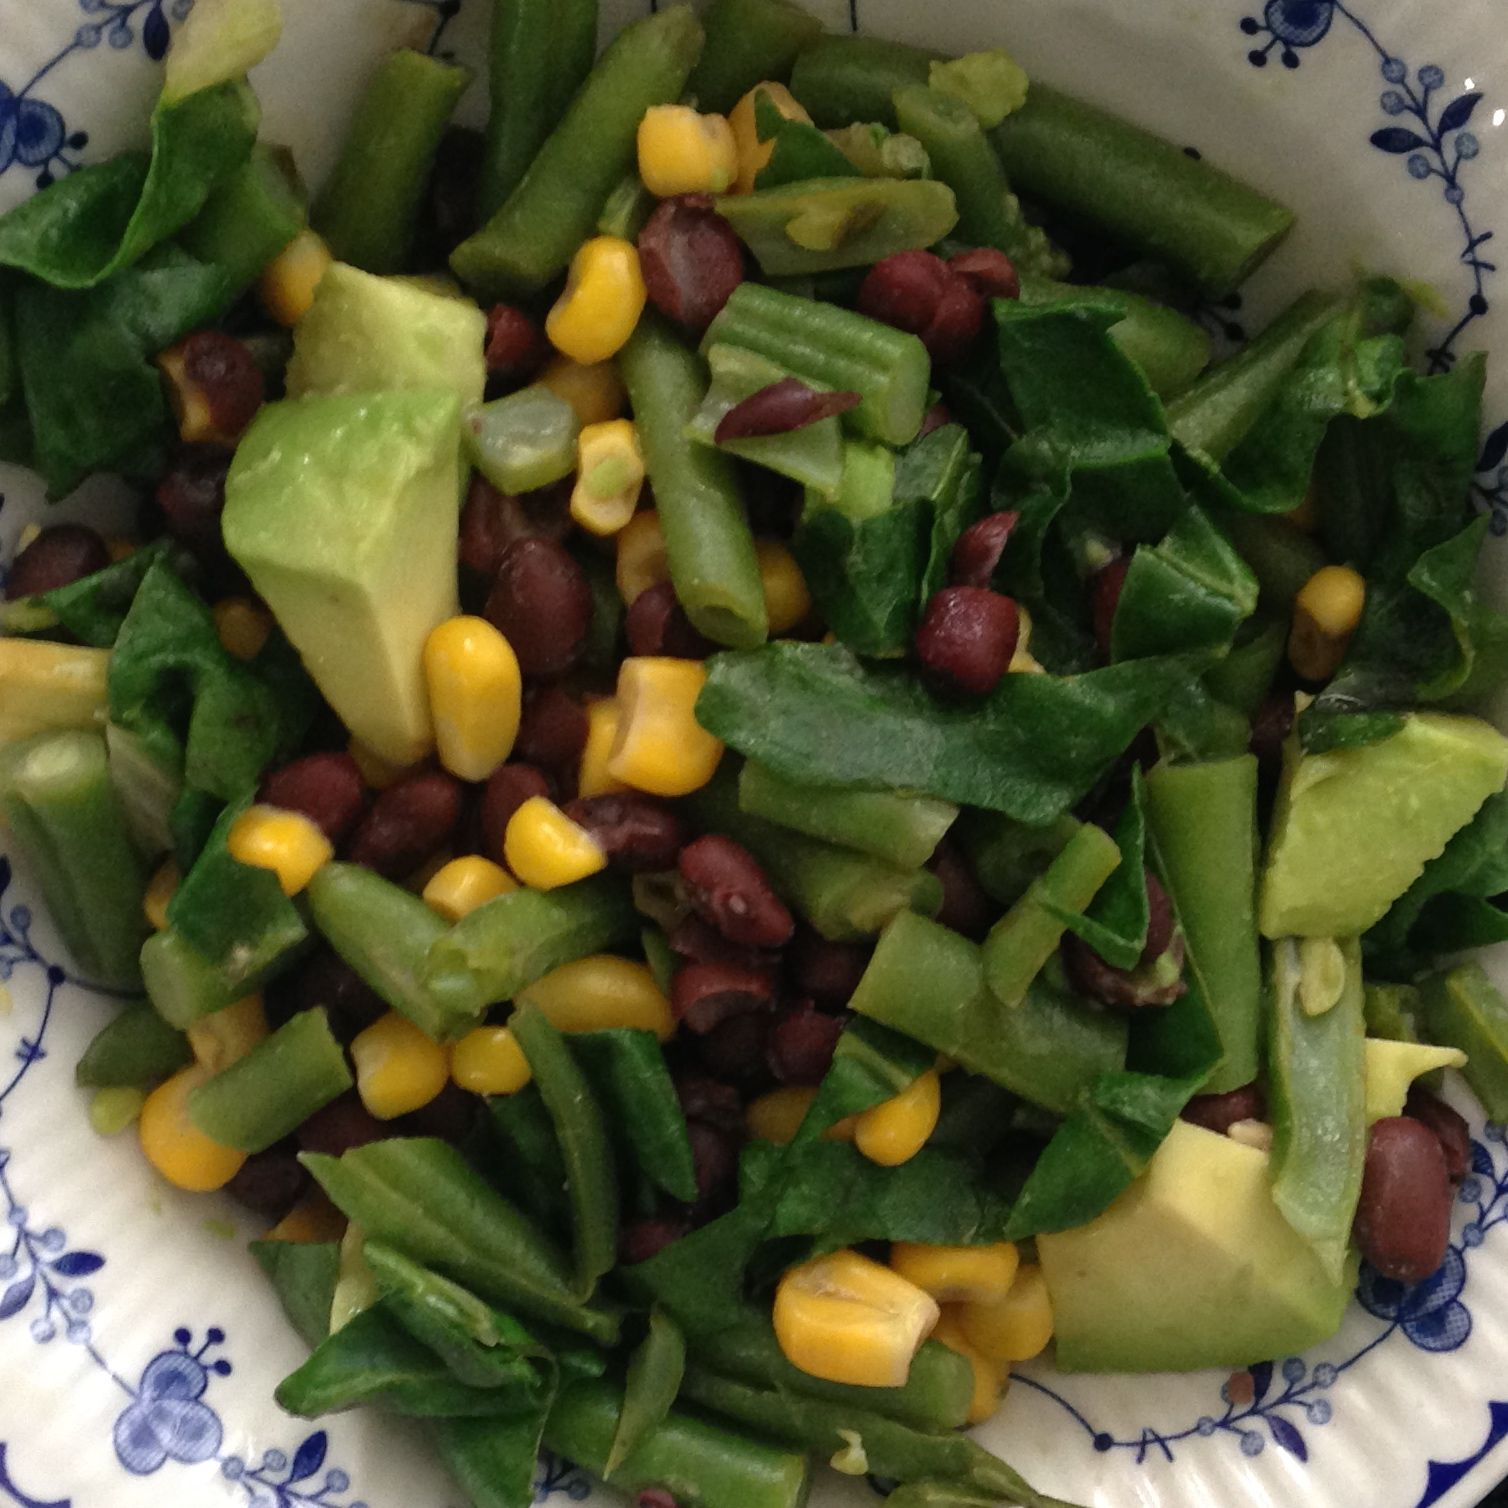 """""""Let food by thy medicine, and let thy medicine be food."""" Hippocrates. Homemade black beans with kombu, fresh thyme & garlic. Green beans. Collard greens. Avocado. Corn. Collard greens are anti-oxidant, anti-inflammatory, cholesterol lowering ability and have B vitamins and fiber."""